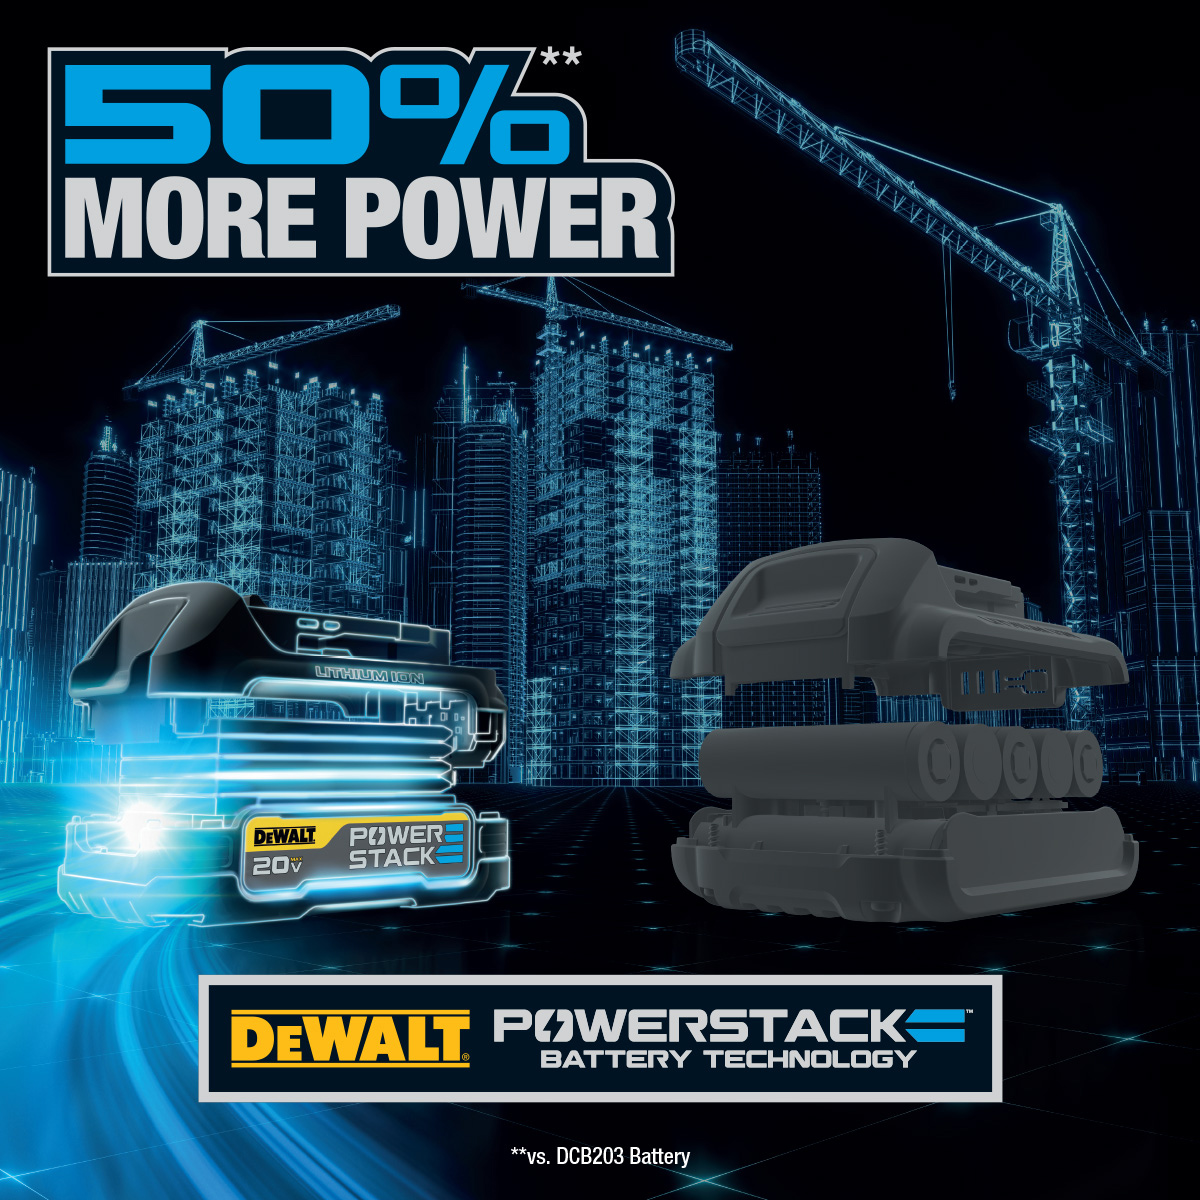 DEWALT® Is The World's First Major Power Tool Brand To Use Pouch Cell Batteries Designed For The Construction Industry, Marking A New Era Of Cordless Power Tool Performance